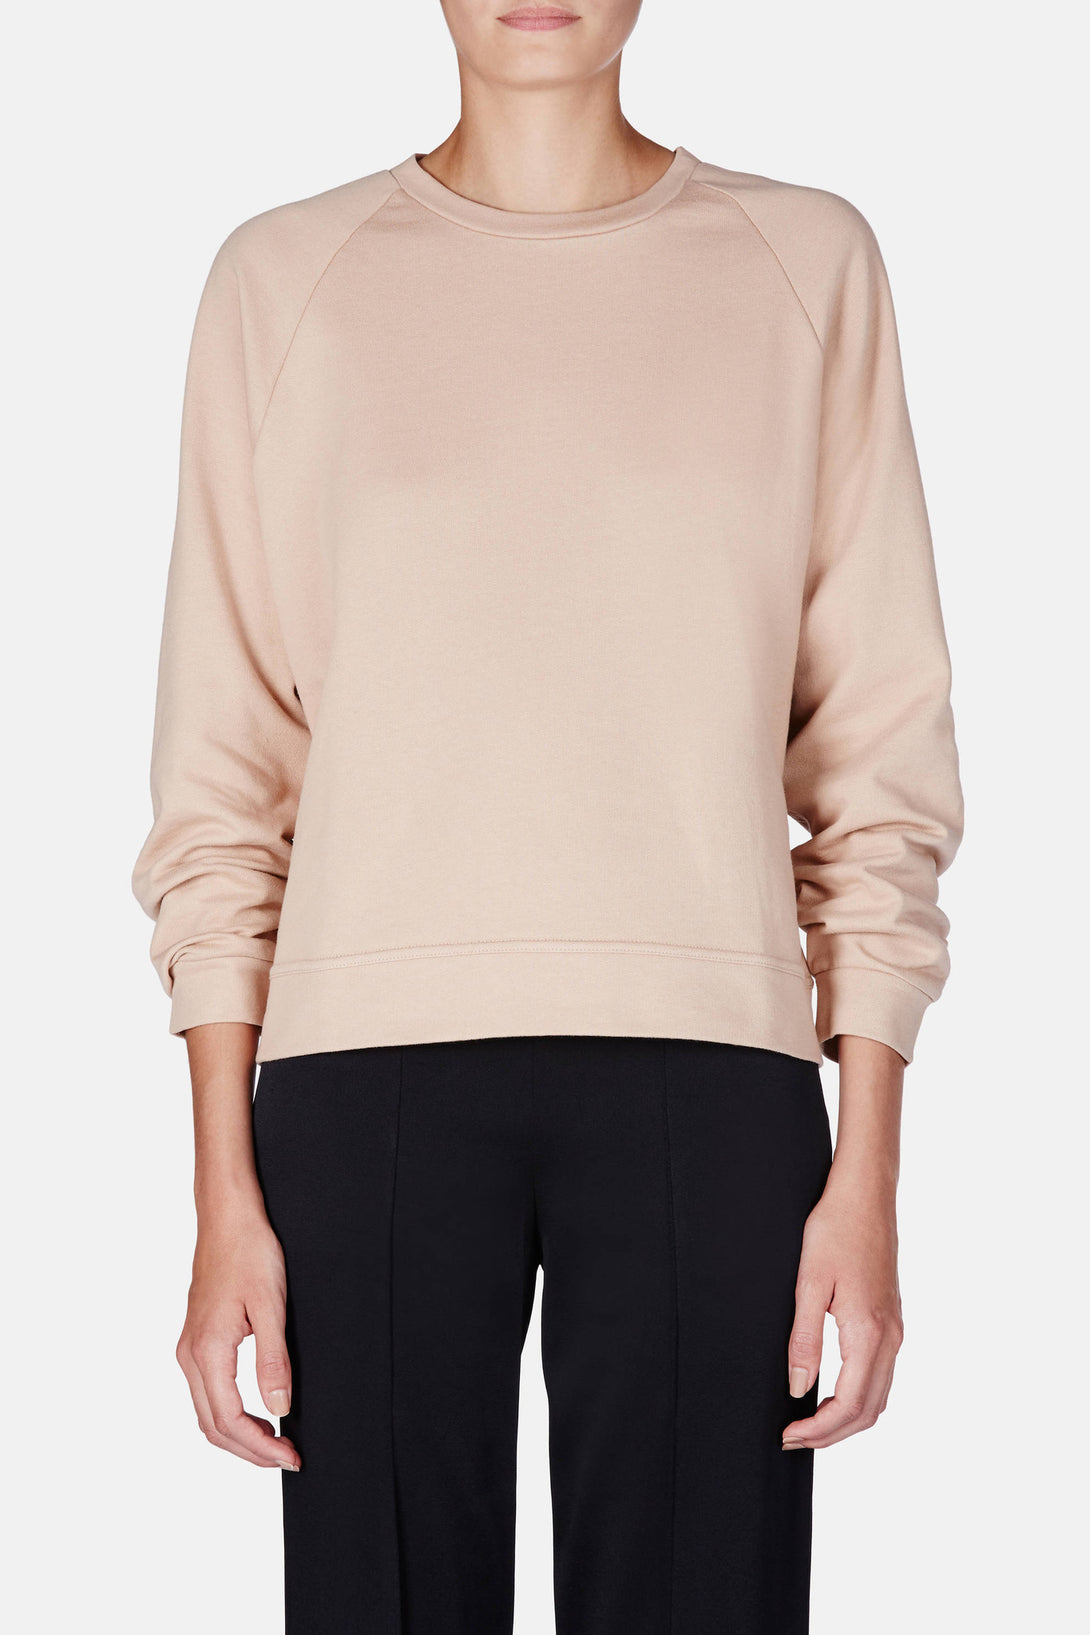 Basic Sweatshirt - Nude 2